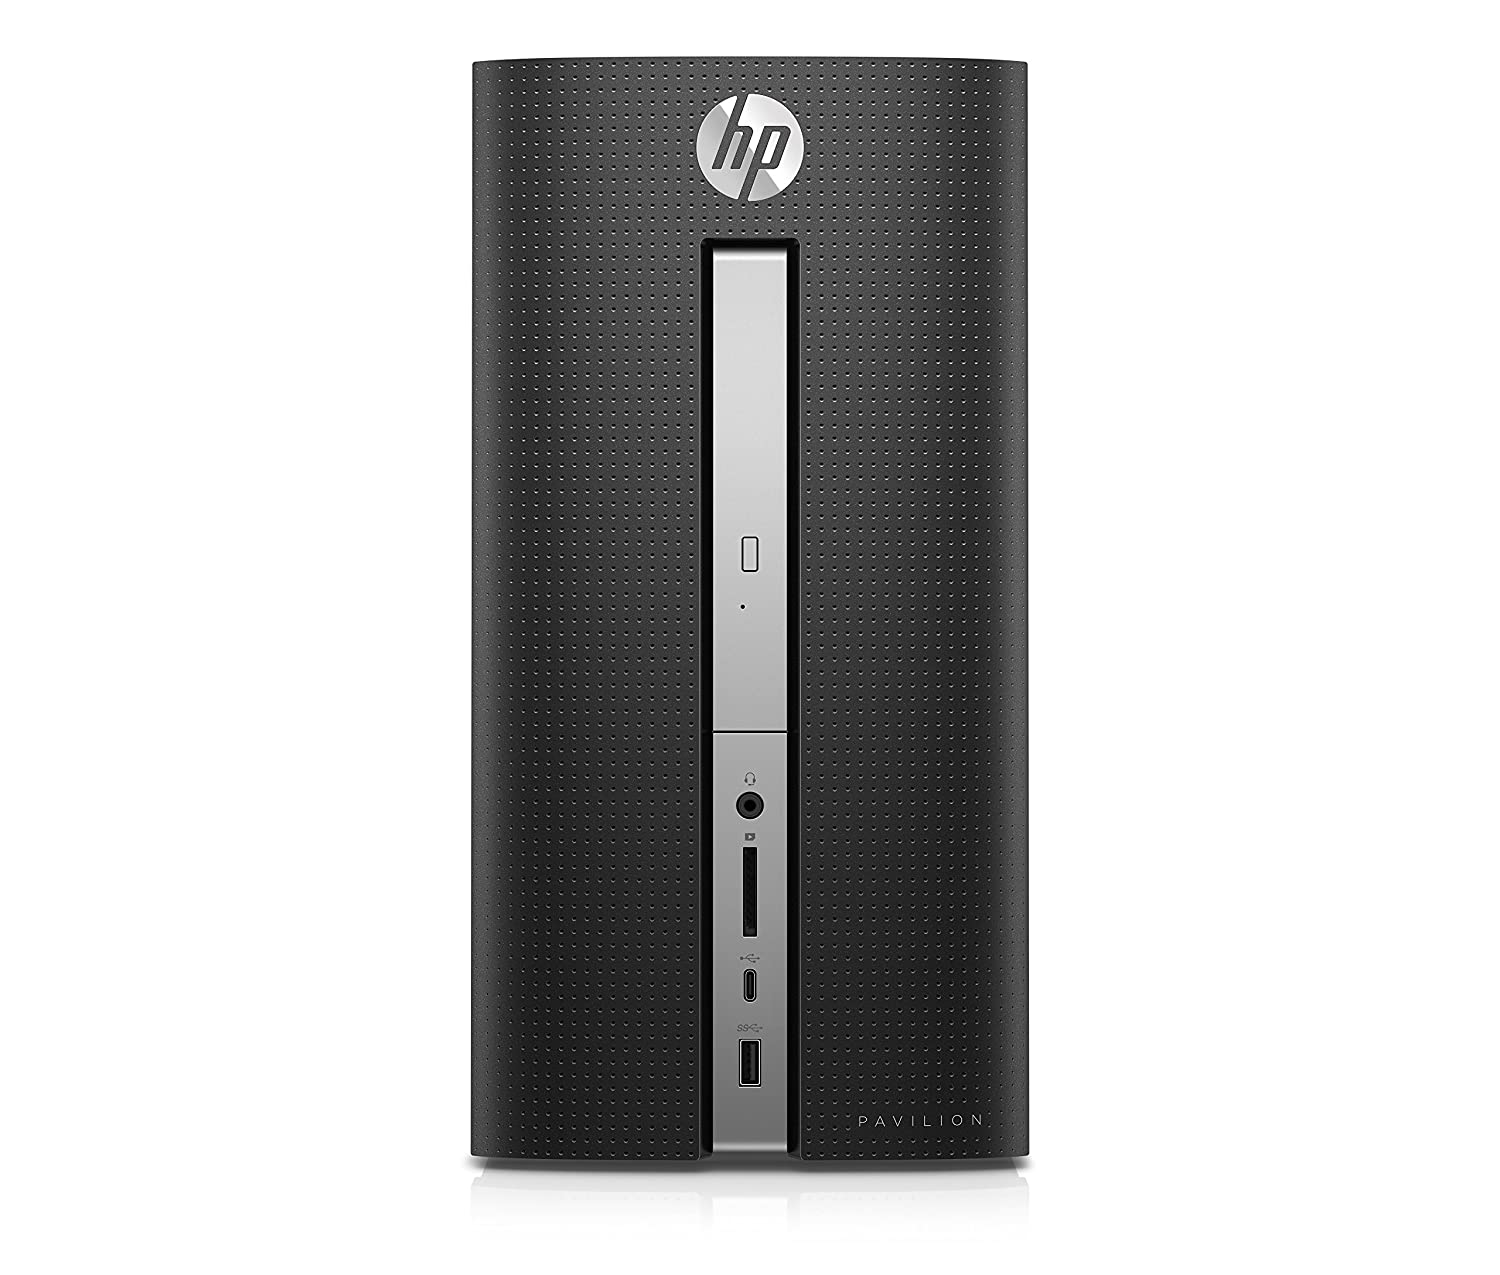 HP Pavilion 570-p039nl Desktop PC de 8 GB, i5 – 7400, HDD 1000 GB, AMD Radeon RX 460, Negro Brillante [Layout Italiano]